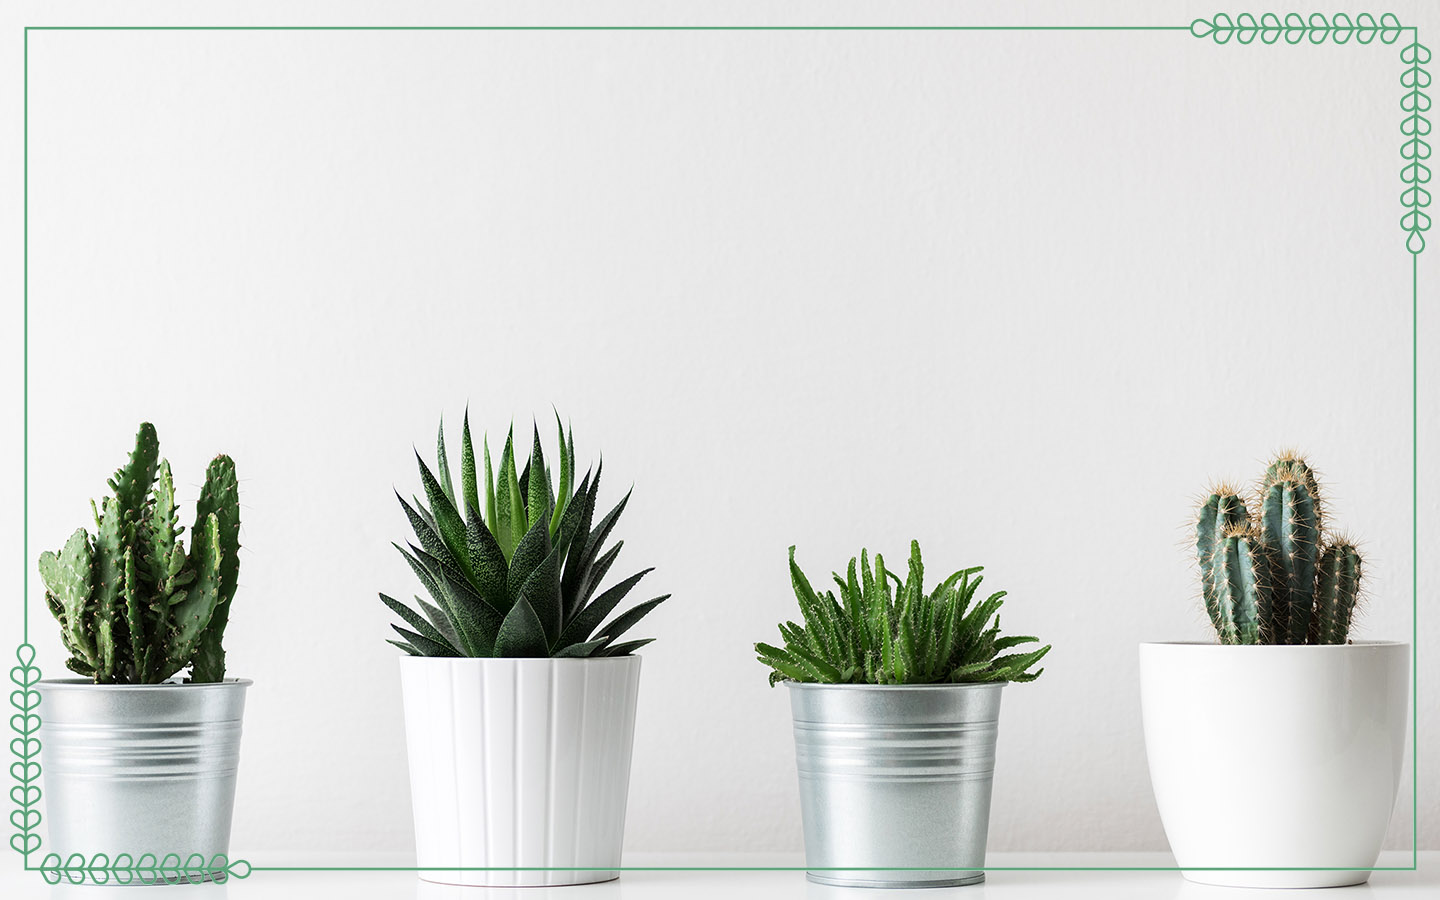 Four haworthia succulents lined up on a table against a white background